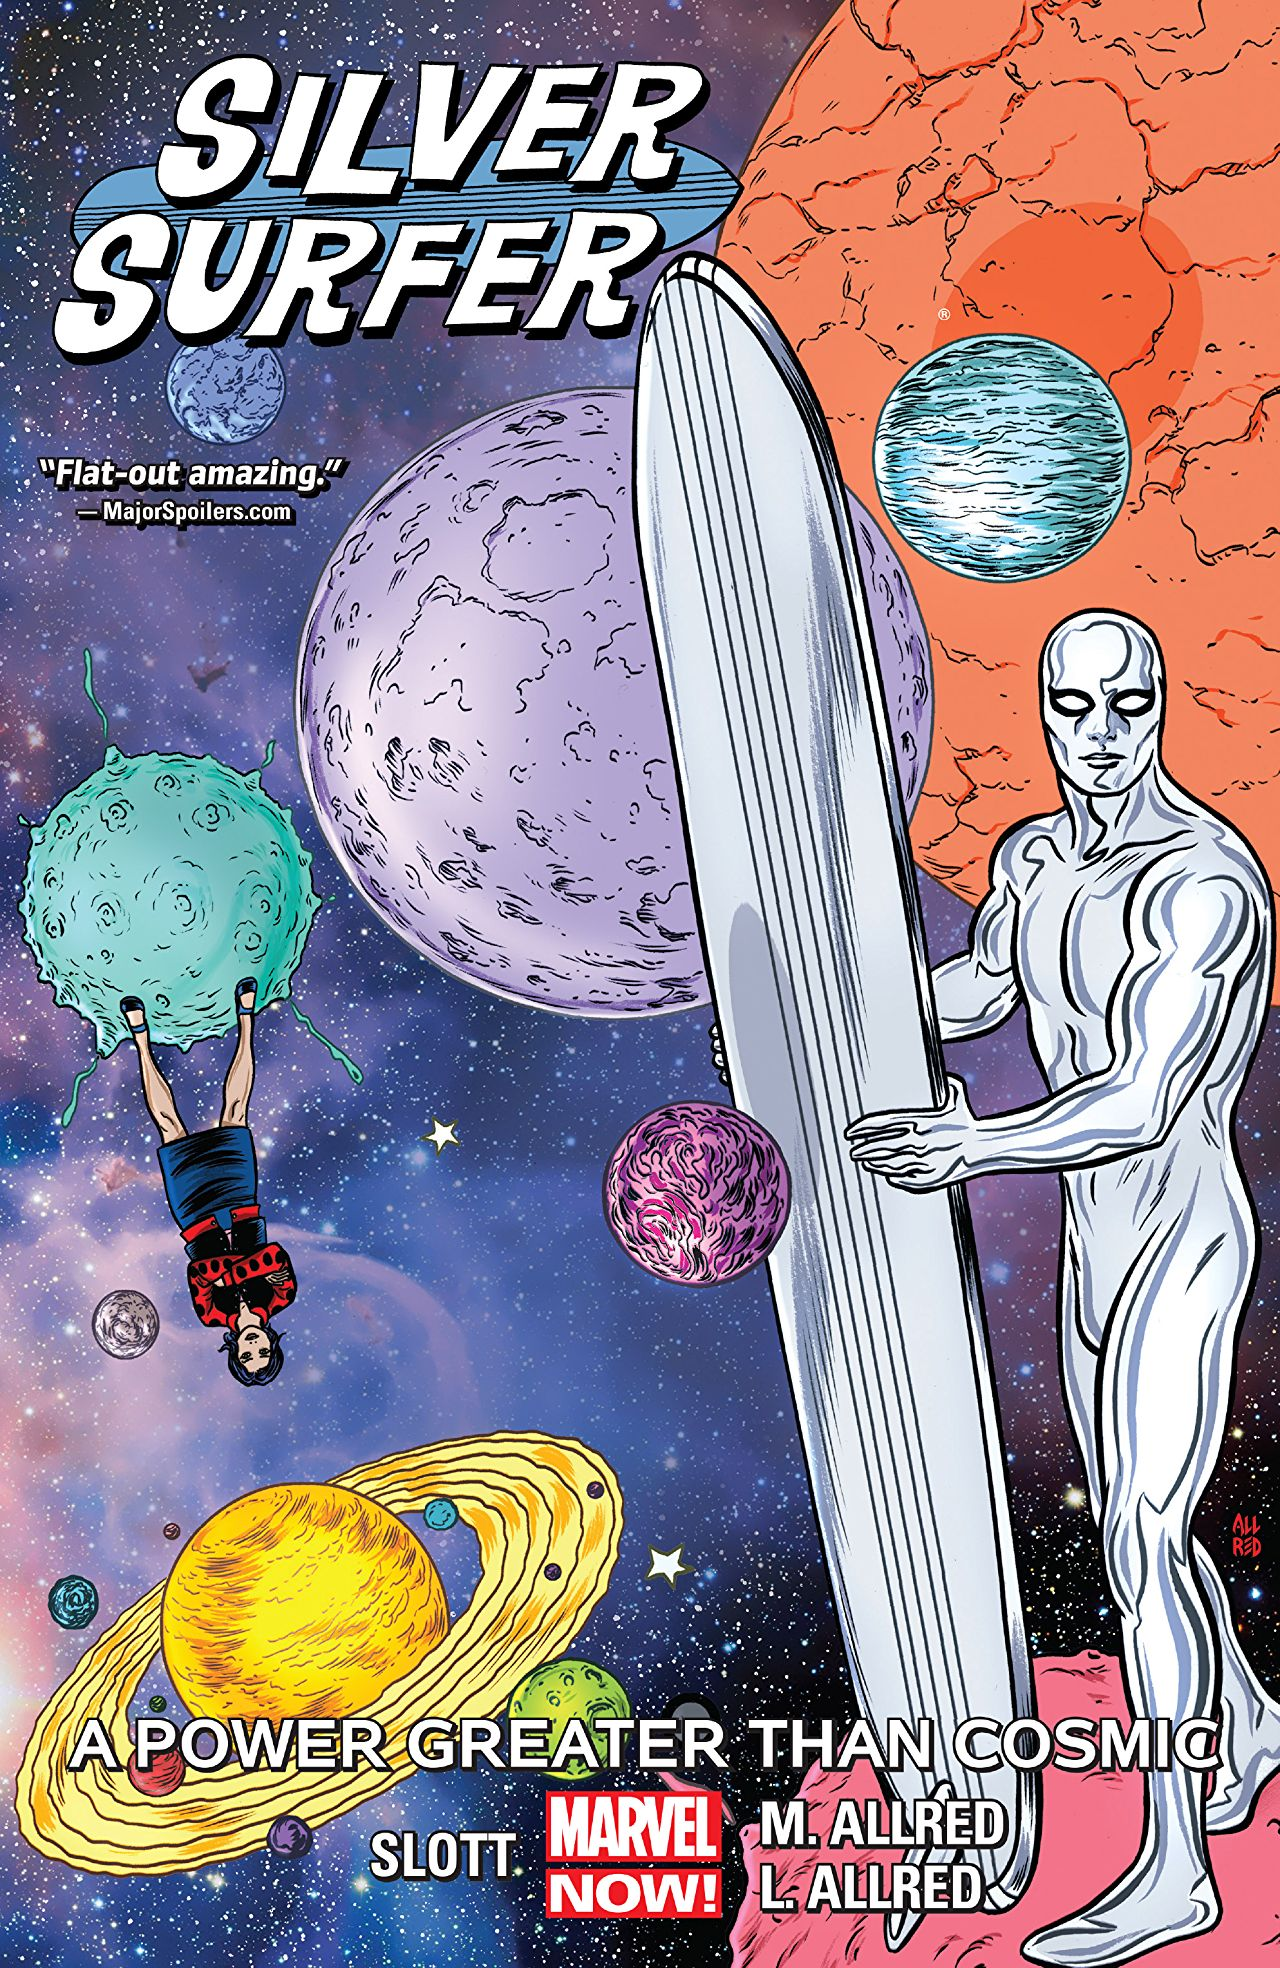 'Silver Surfer Vol. 5: A Power Greater Than Cosmic' review: Such refreshing heartache